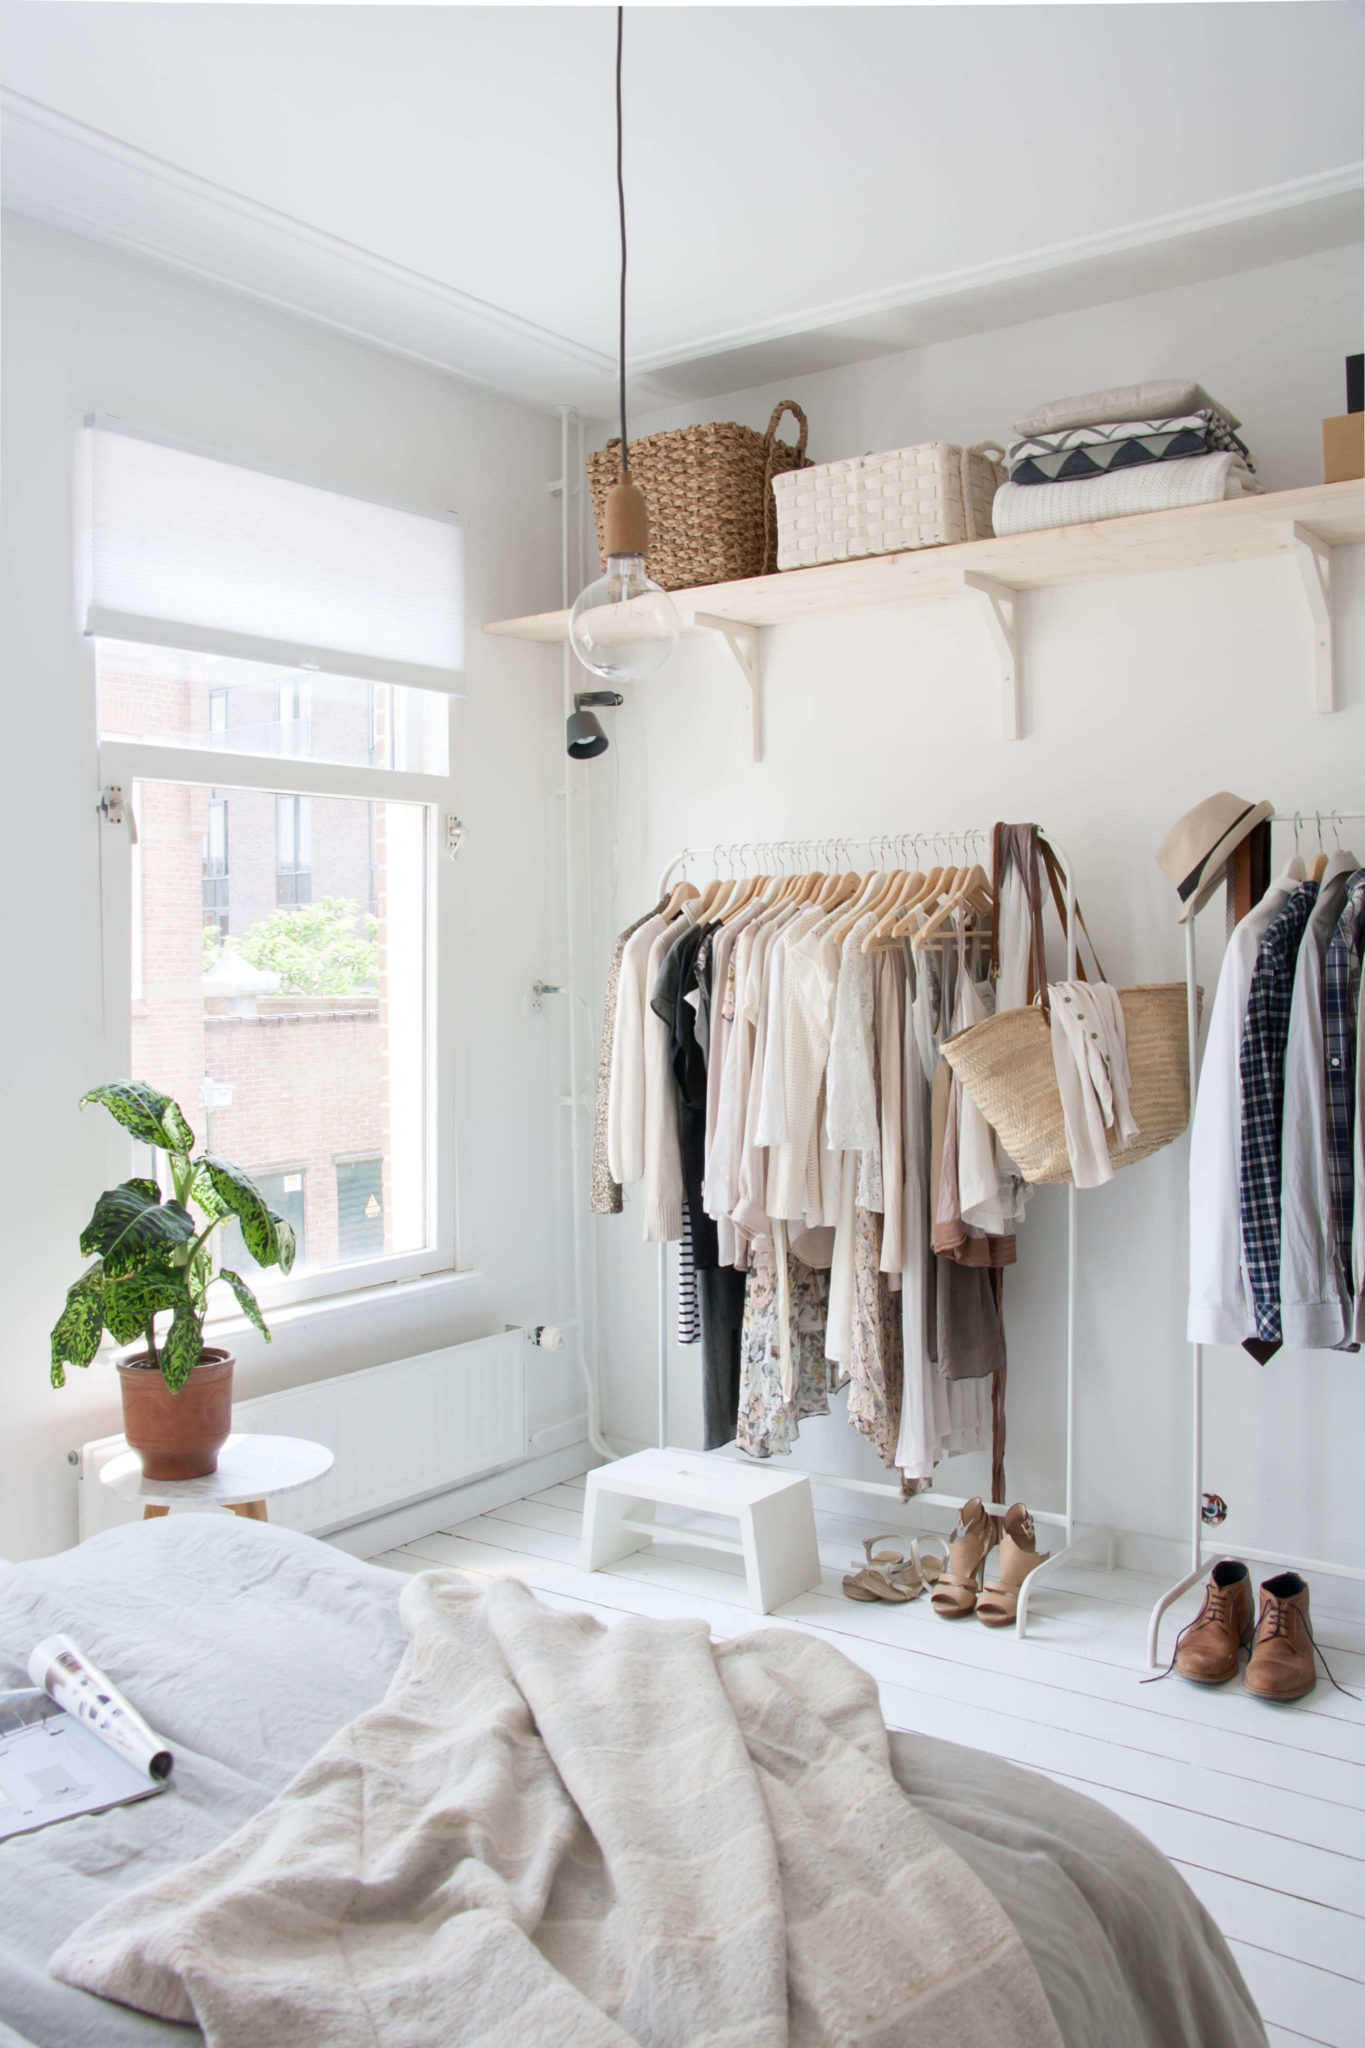 Post-Capsule Wardrobe // Thoughts, Tips + What's Next